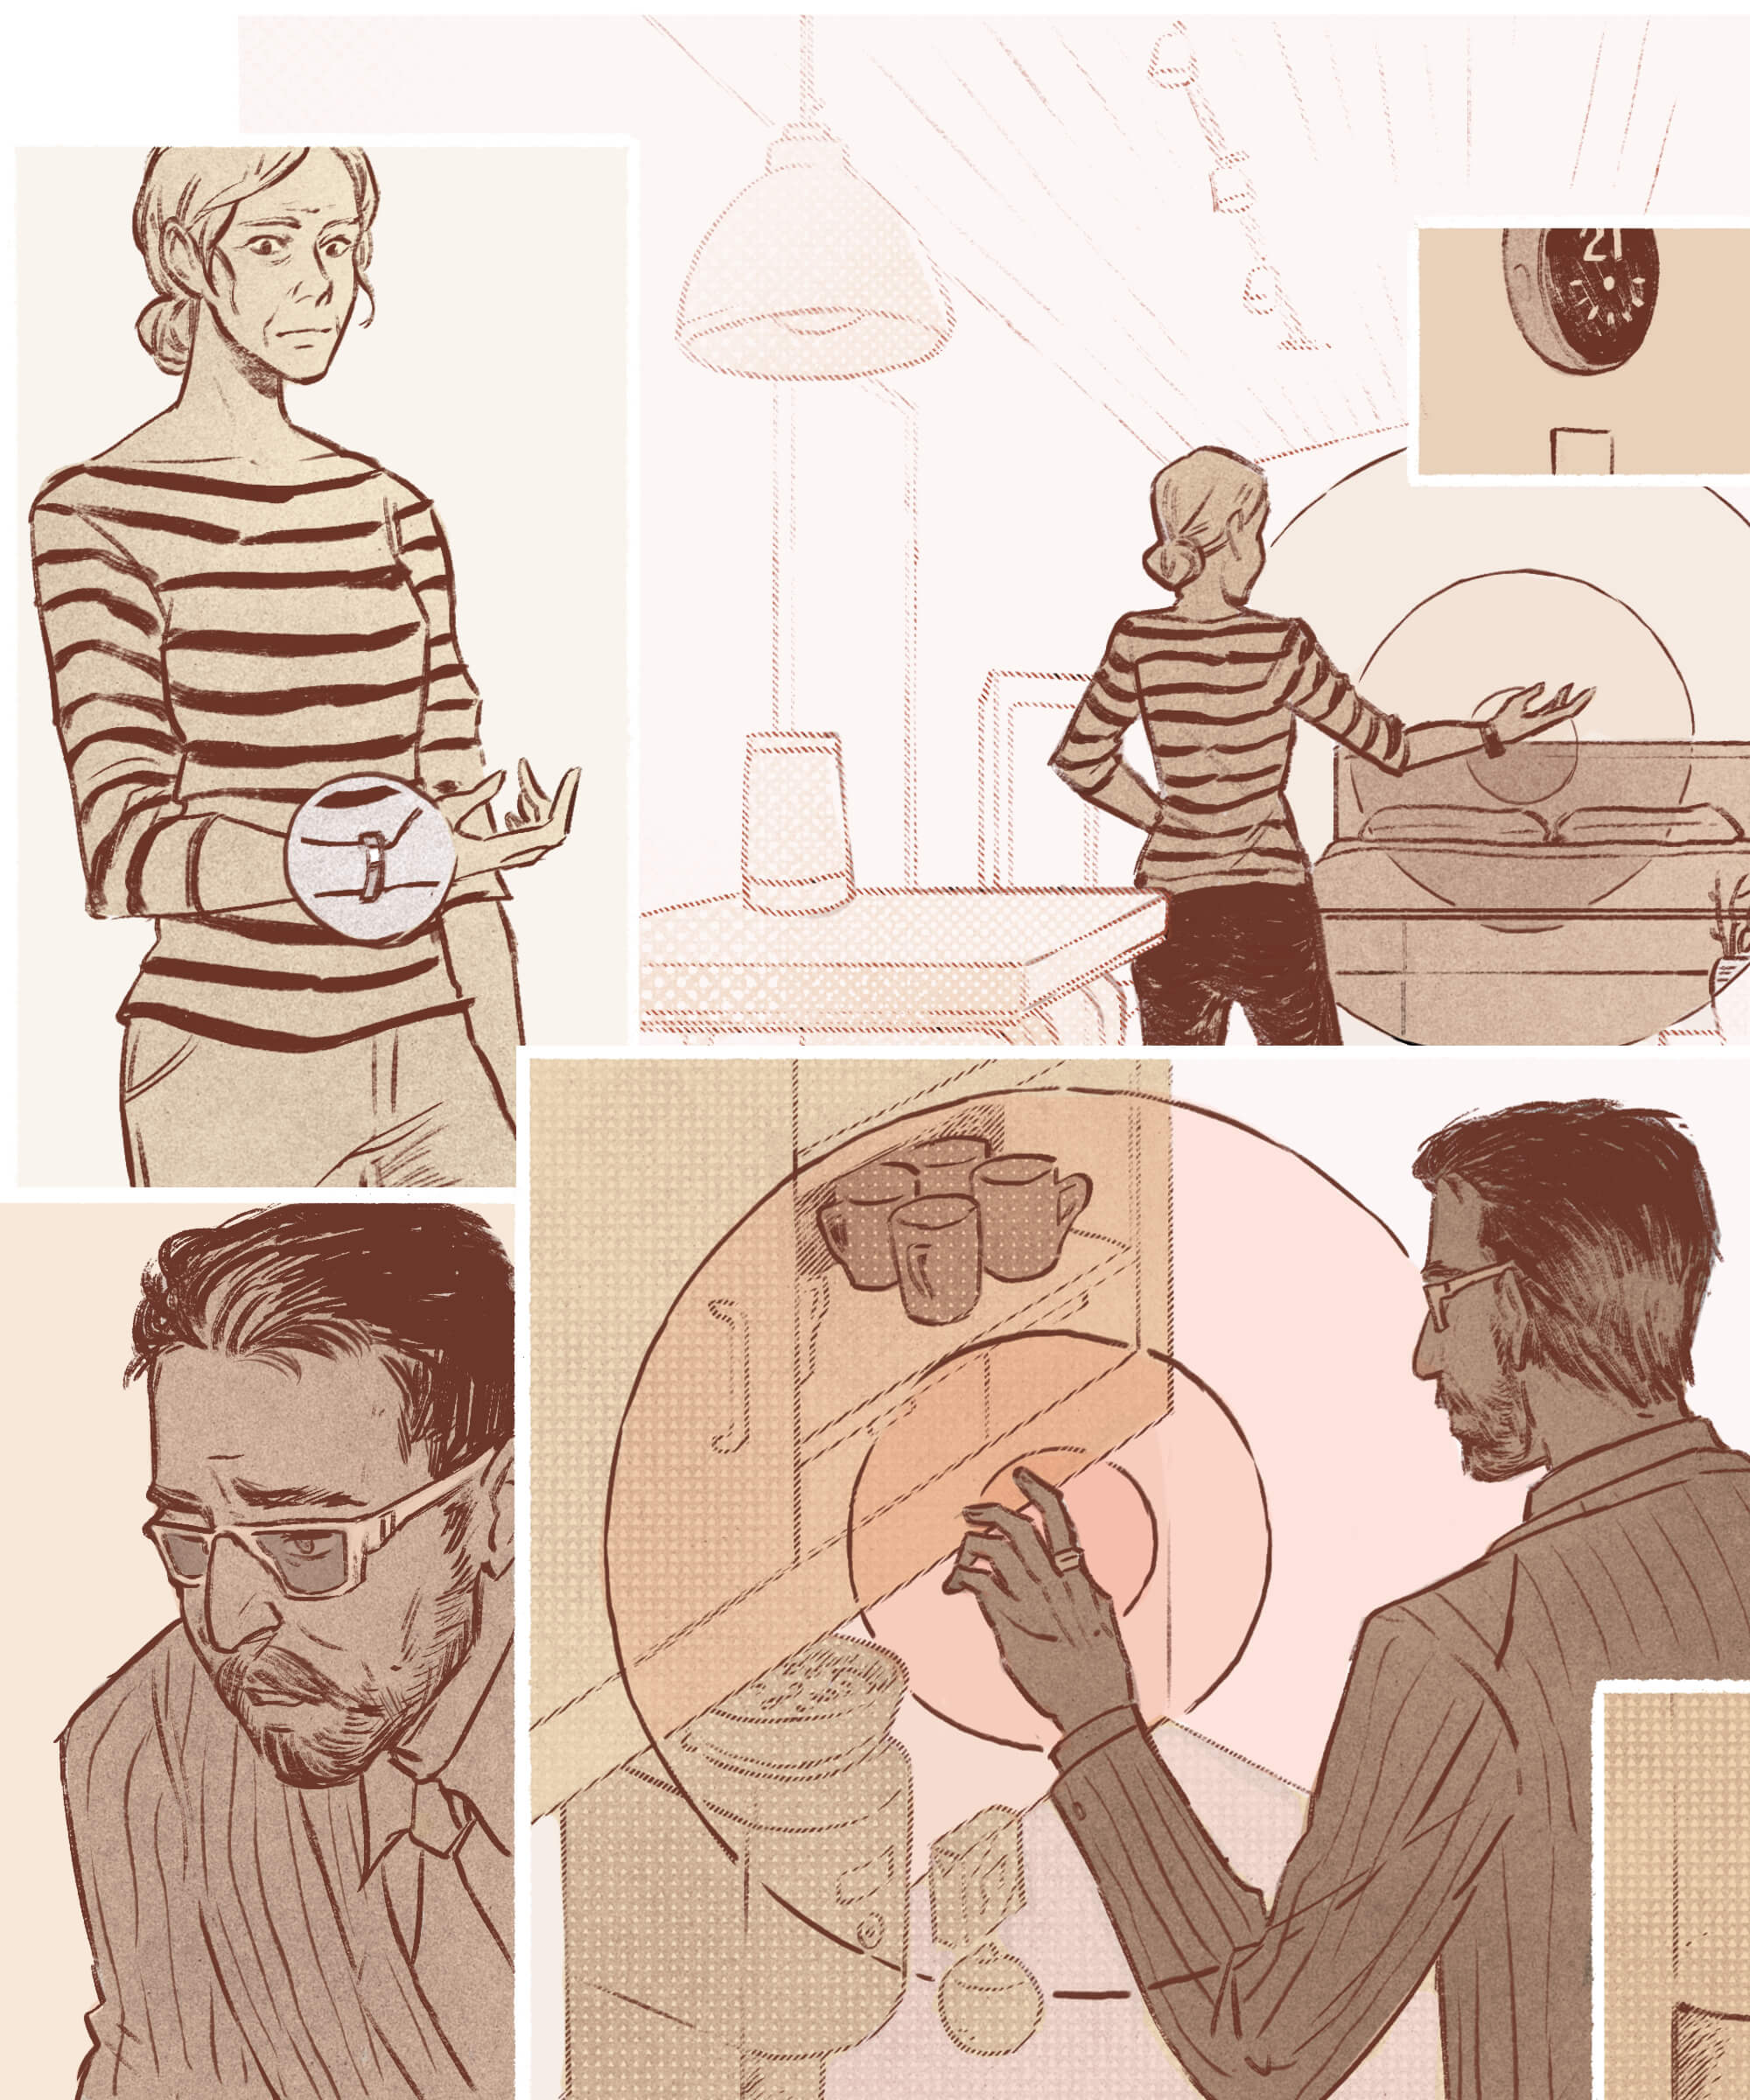 An illustration of a woman controlling a space with a smart watch, and a blind man interacting with smart devices